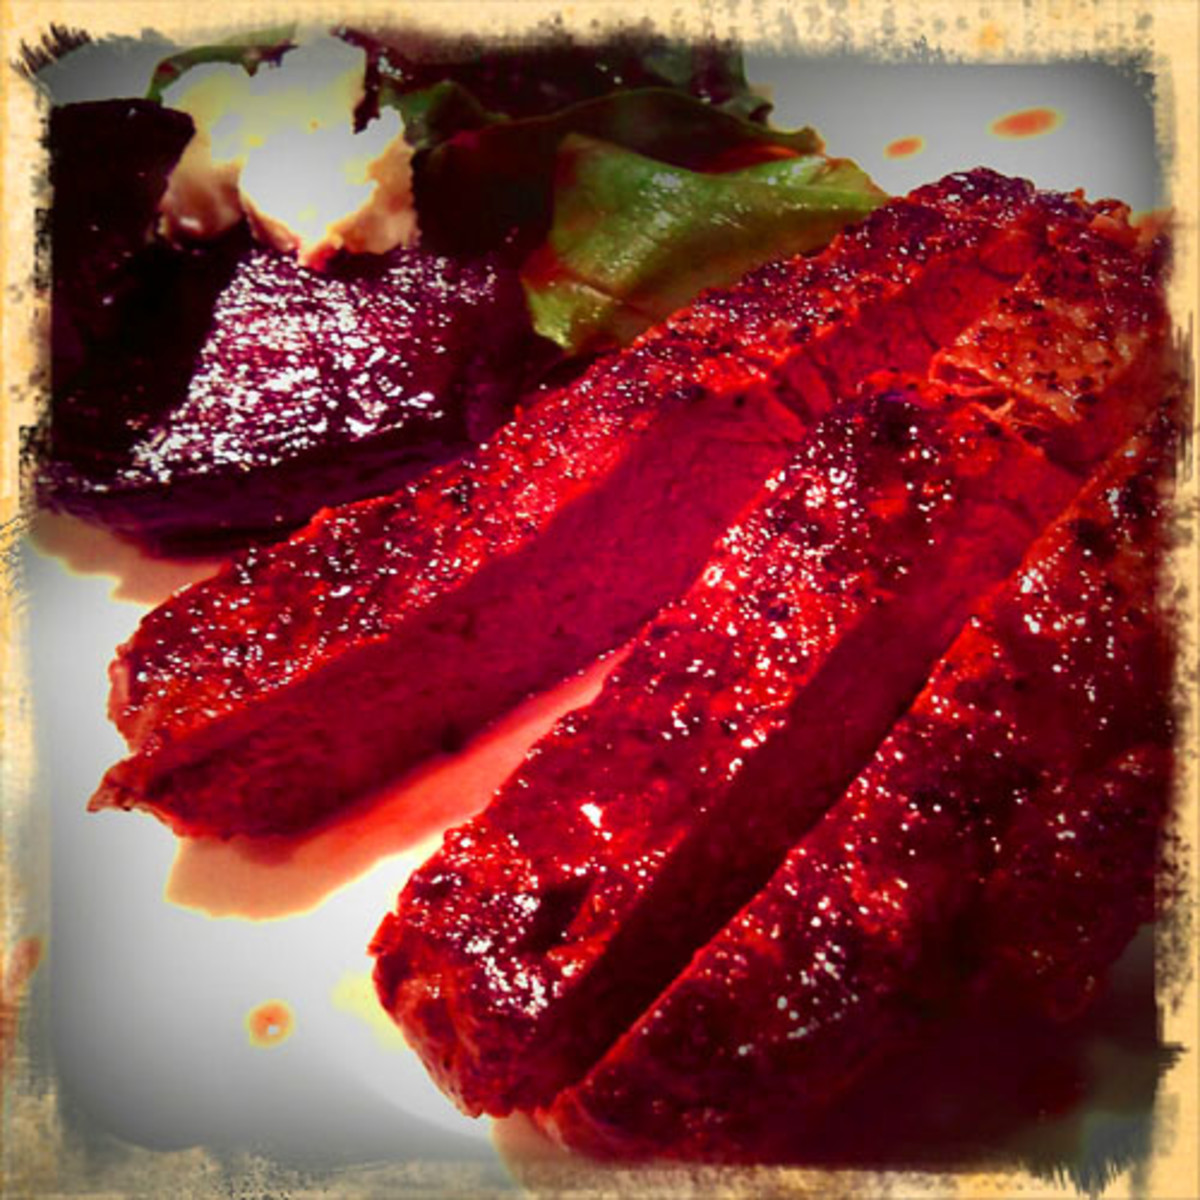 War Horse_horse sirloin w beets and blood-spatter jus